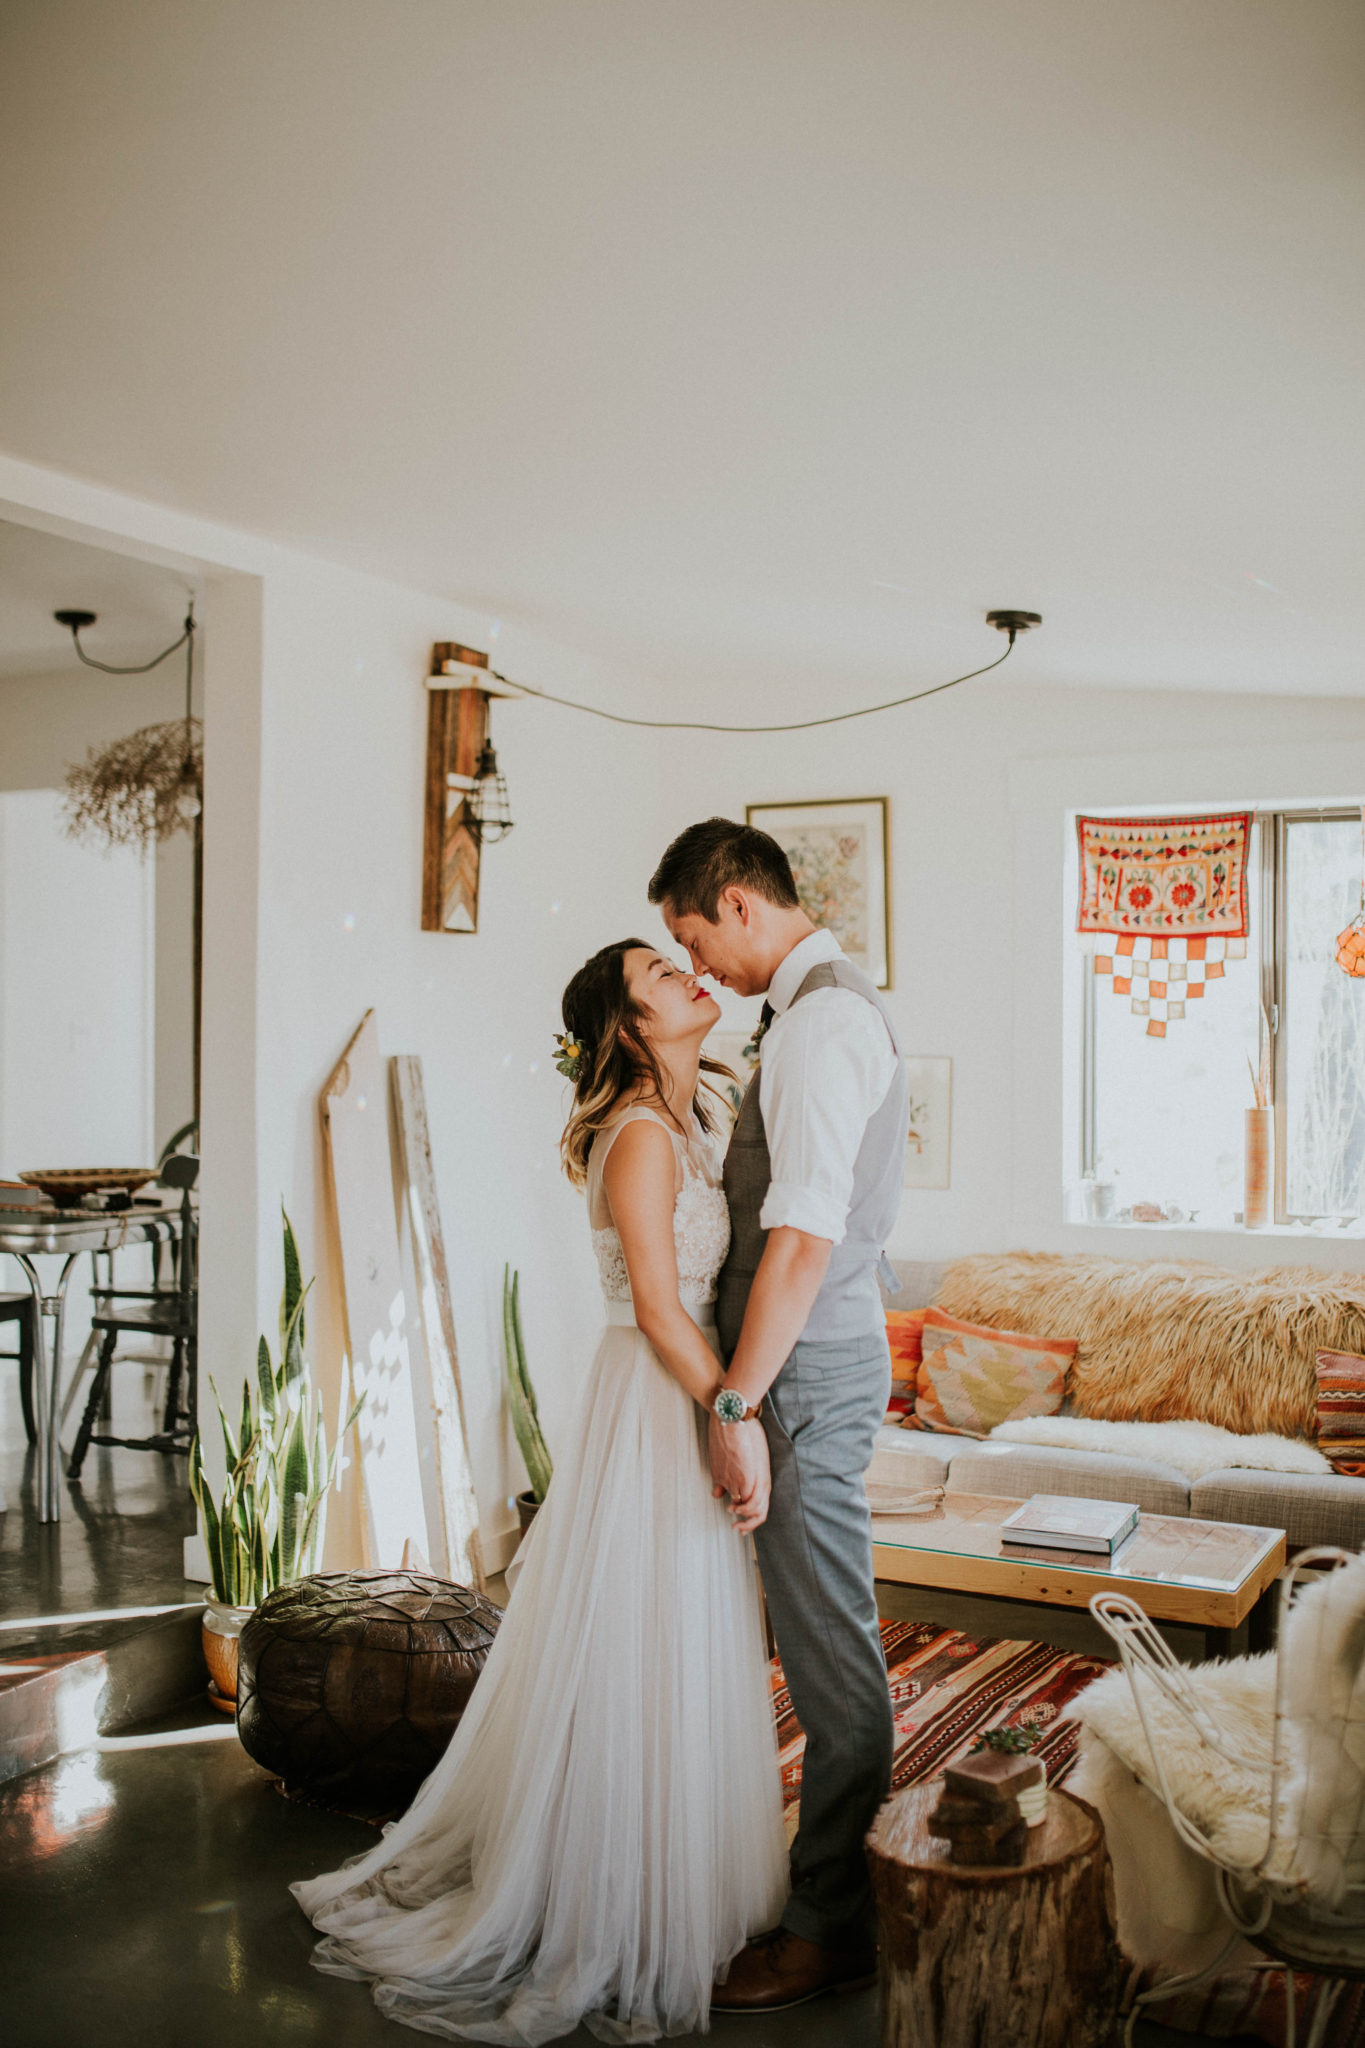 Mandy & Joey Joshua Tree Elopement California Wedding Photographer-45